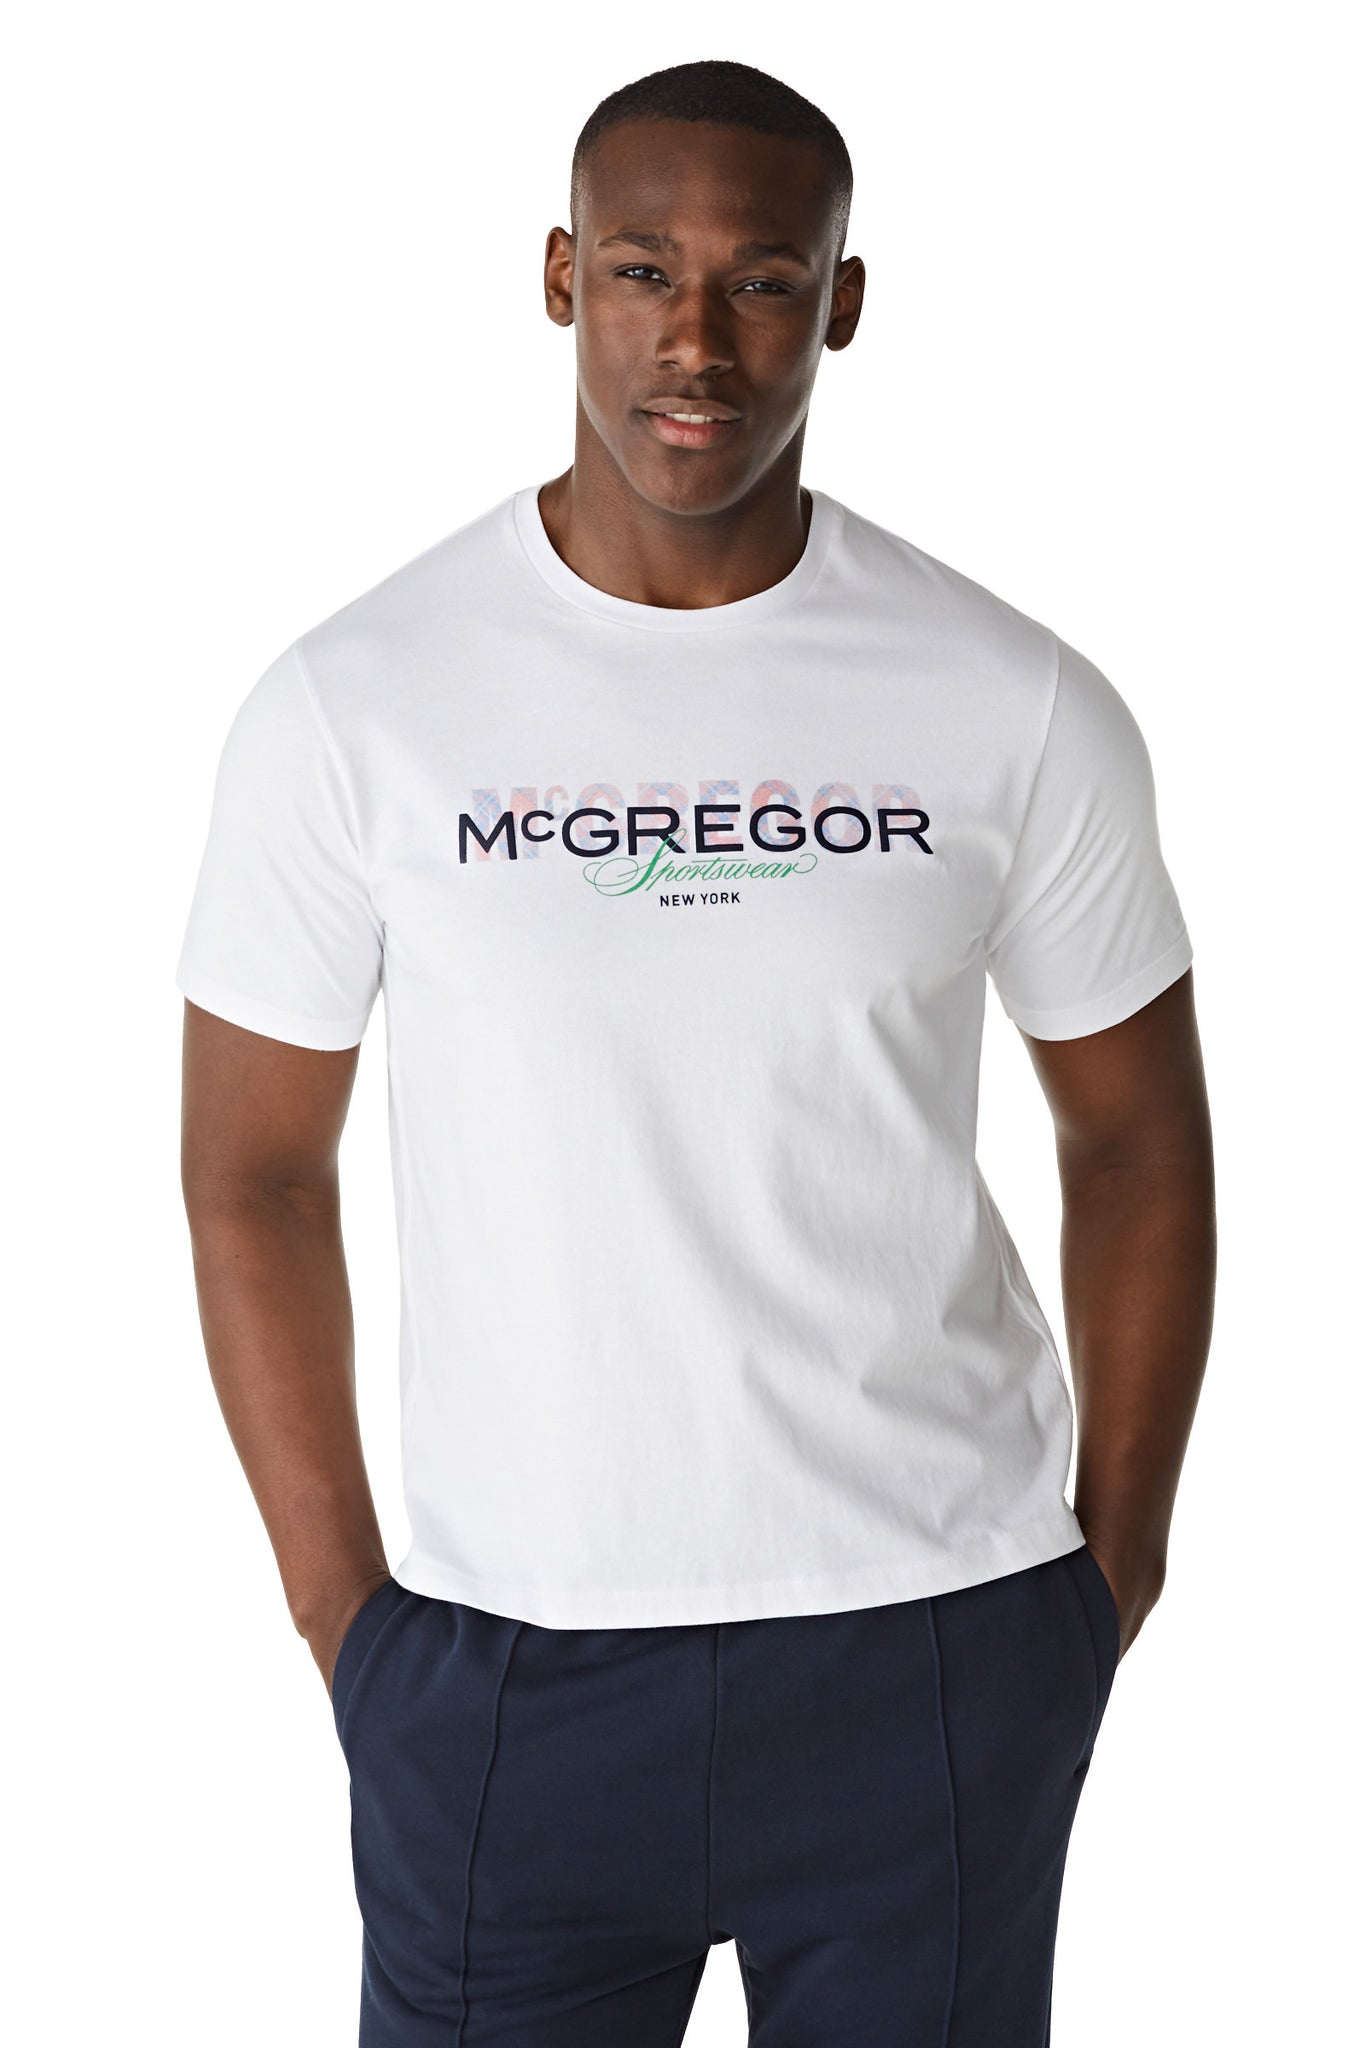 The McGregor Sportswear Tee S/s